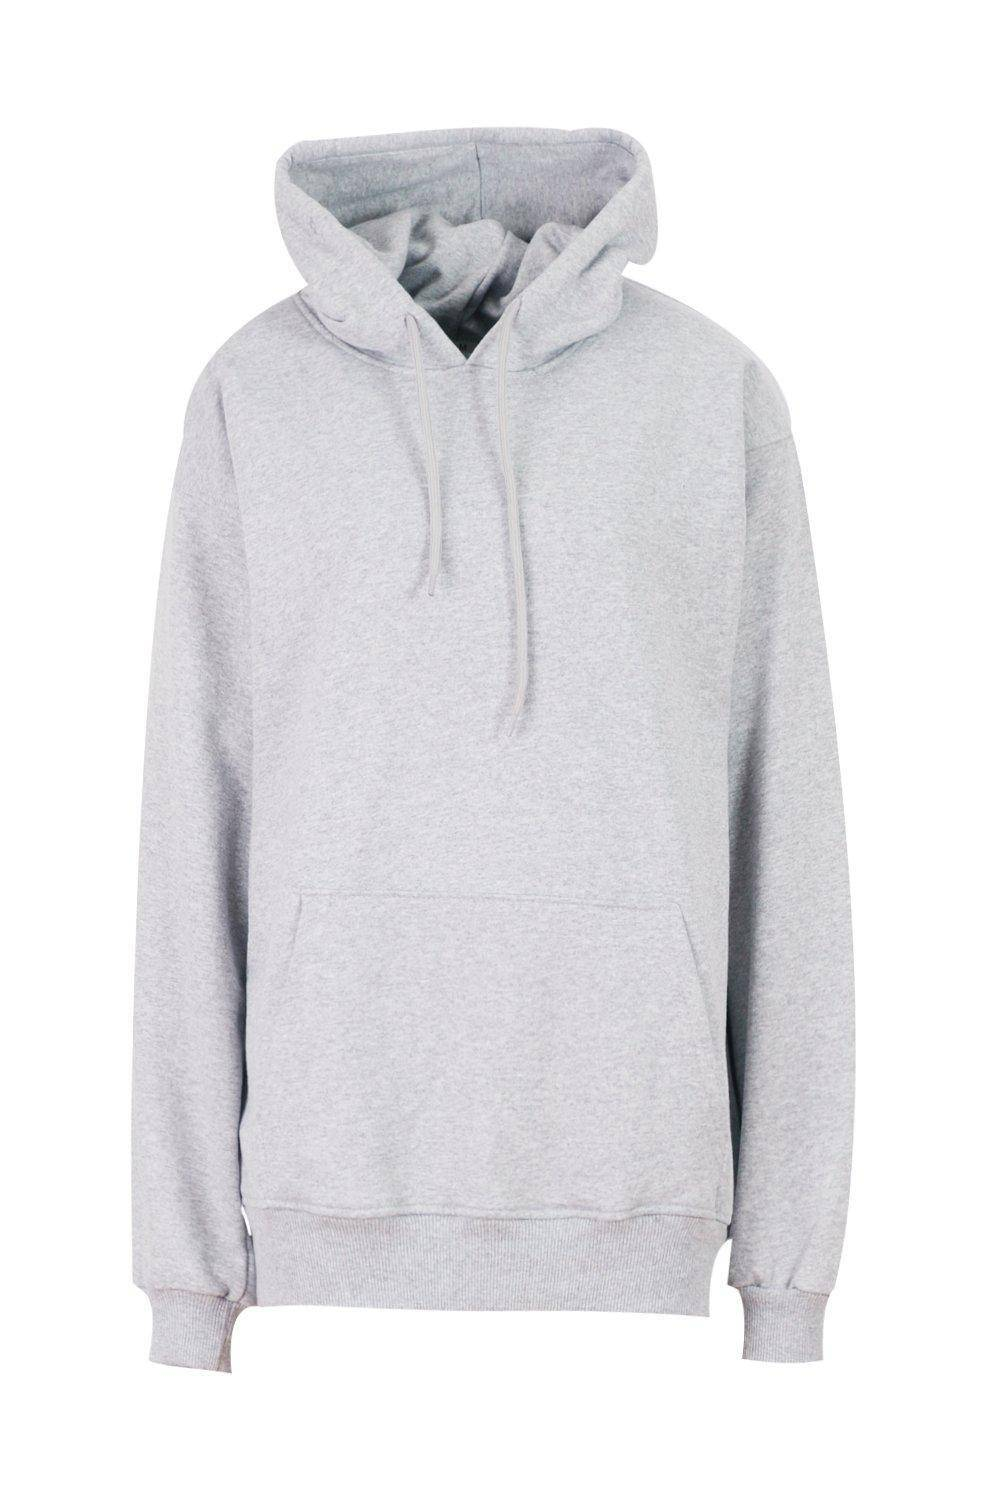 Grey Oversized Pullover Hoodie J5 Fashion